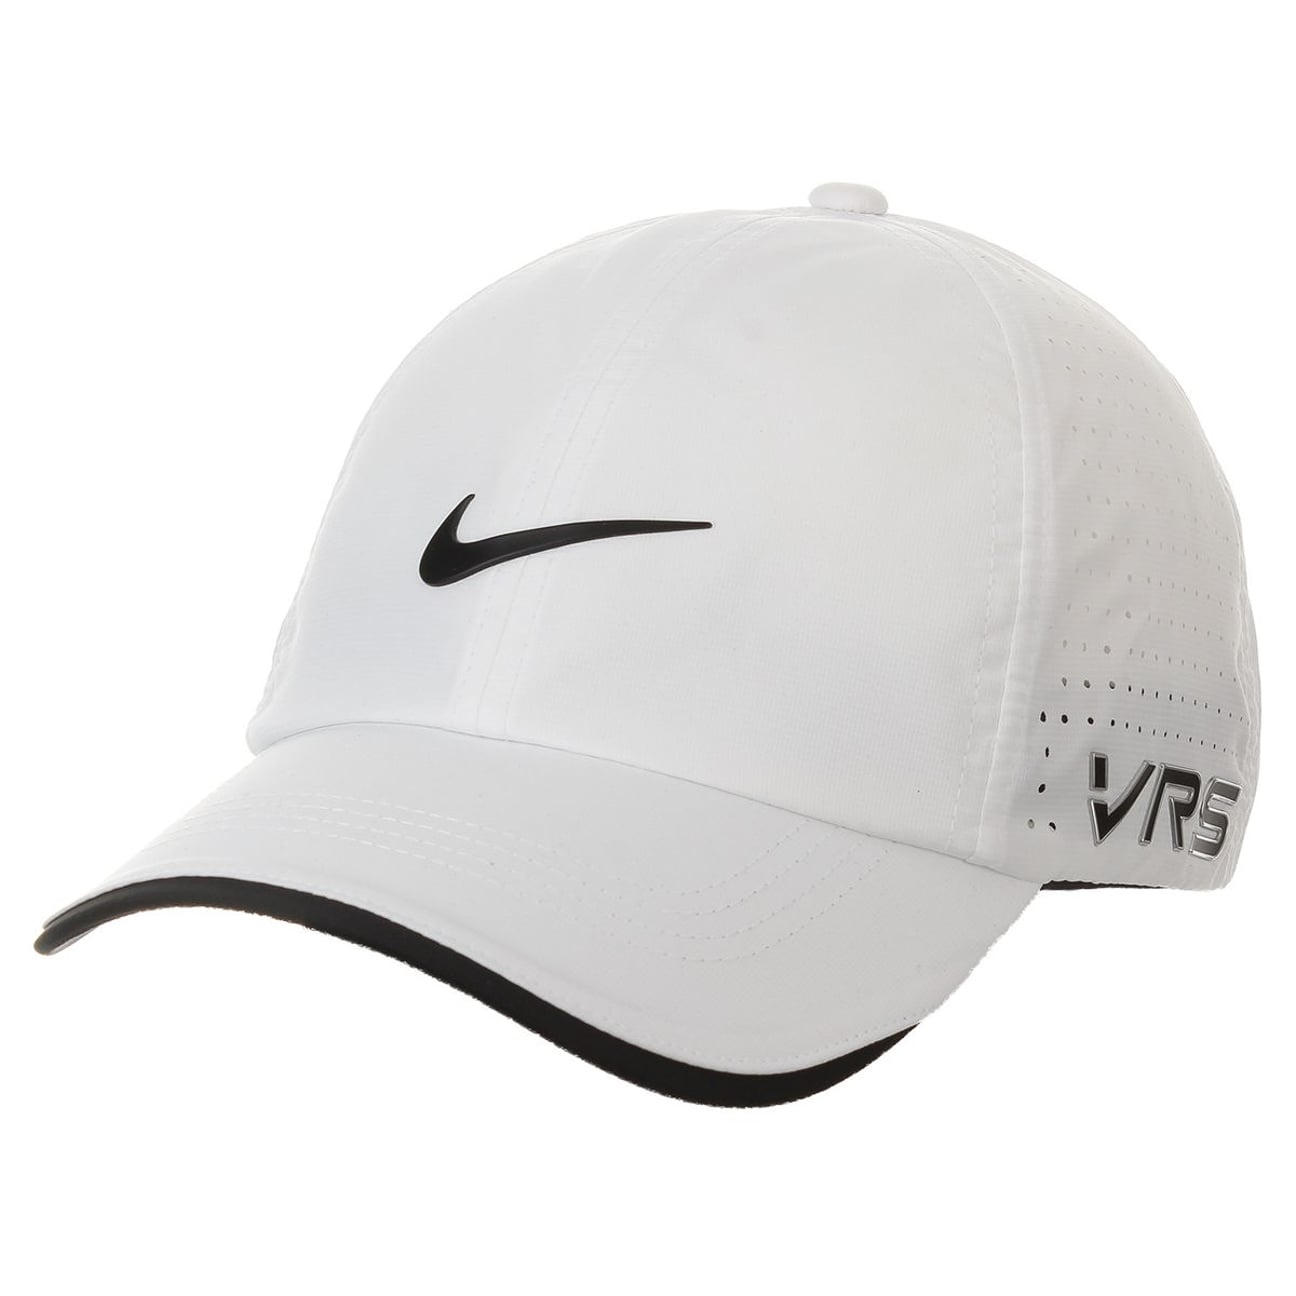 new tour perforated golf cap by nike 27 99. Black Bedroom Furniture Sets. Home Design Ideas